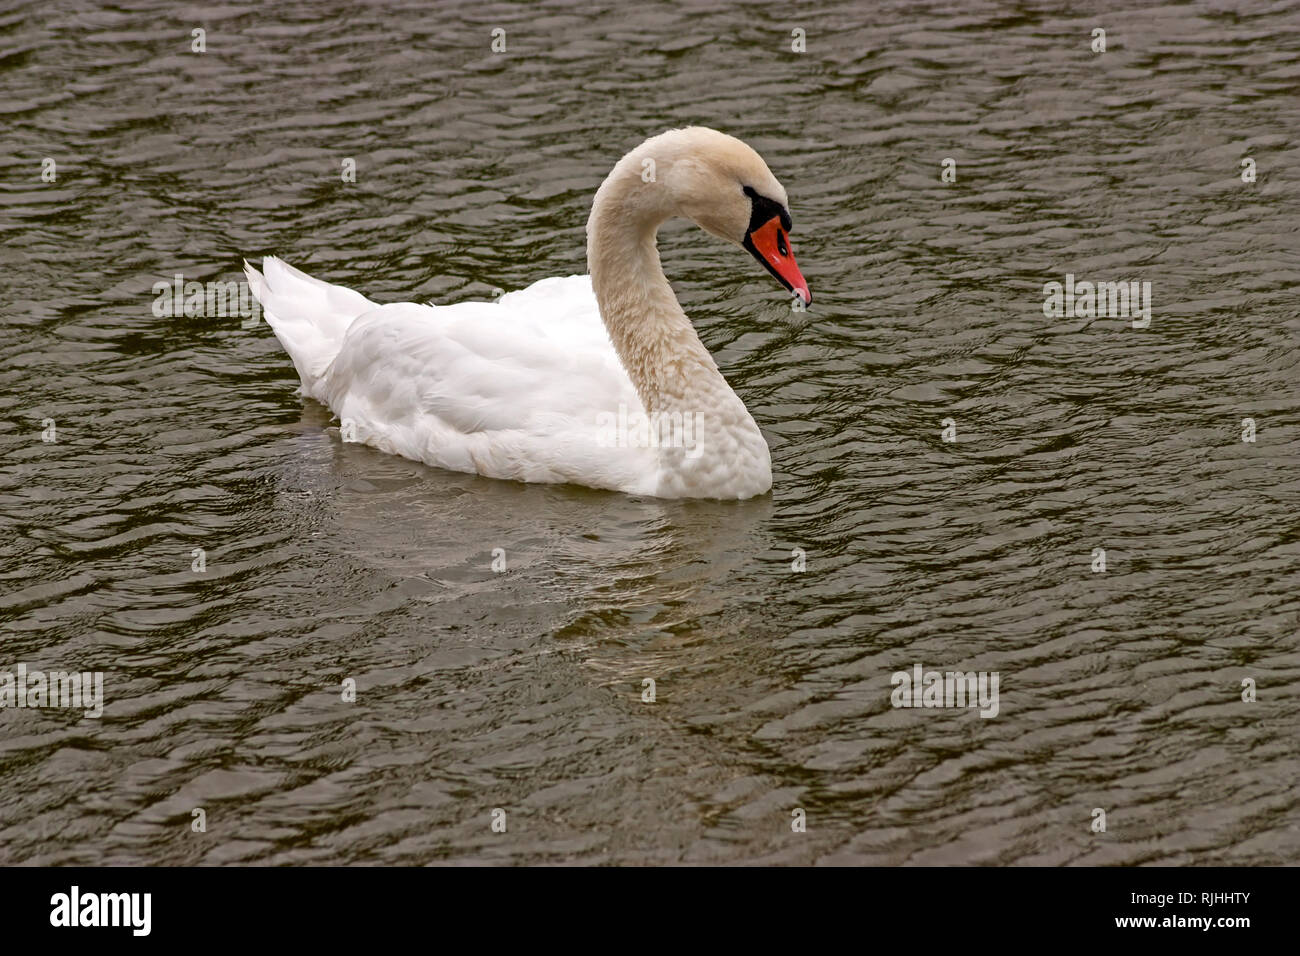 The white swan swimming on pond. - Stock Image